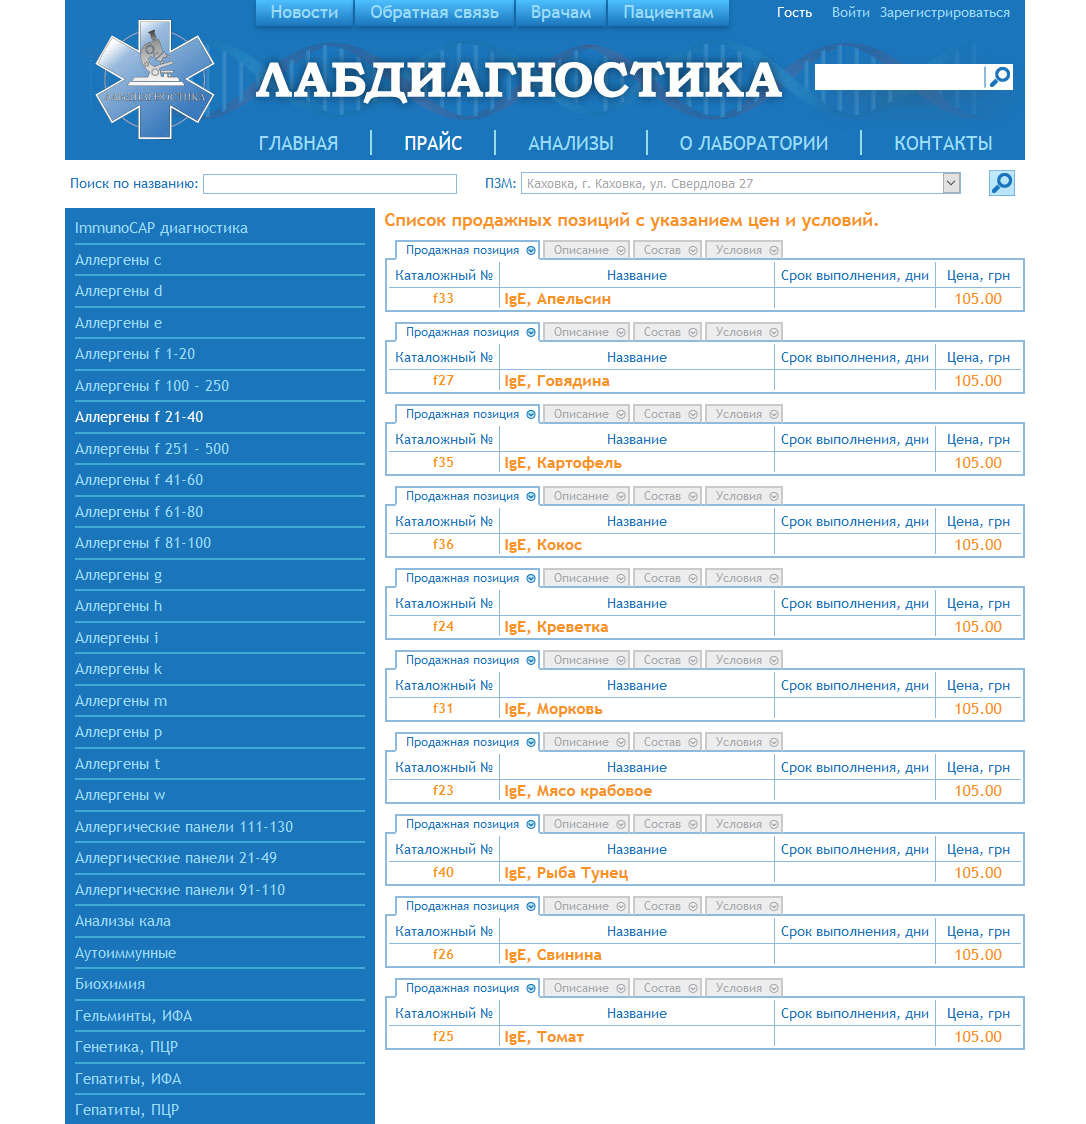 http://lab.in.ua/